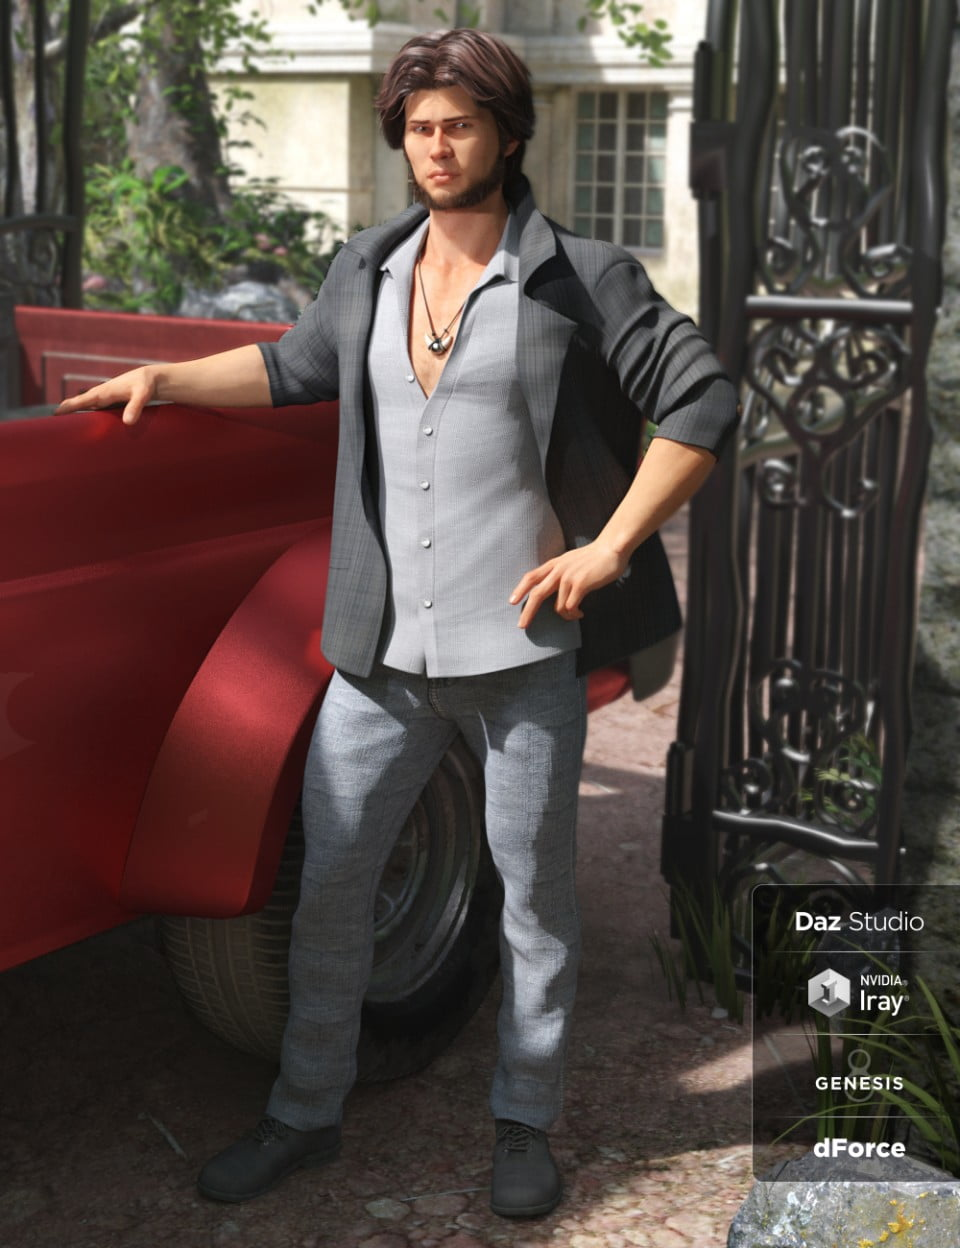 dForce Pack Leader Outfit for Genesis 8 Male(s)